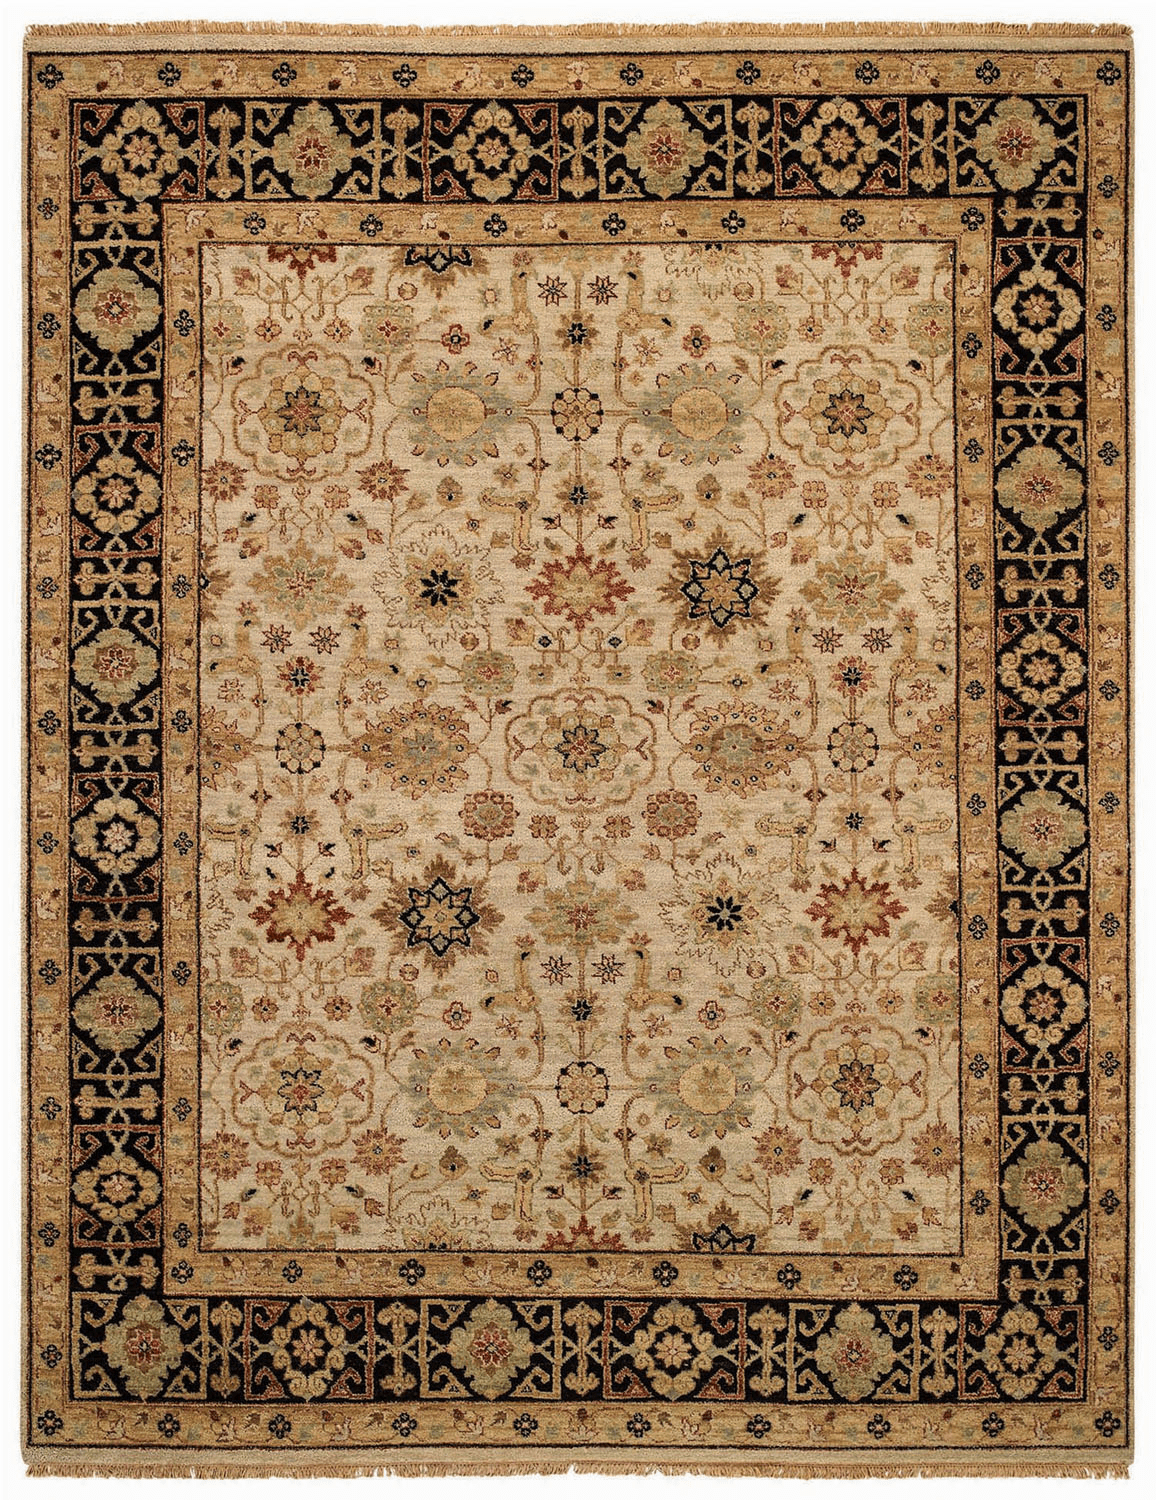 Hand Knotted Beige and Ebony Rug